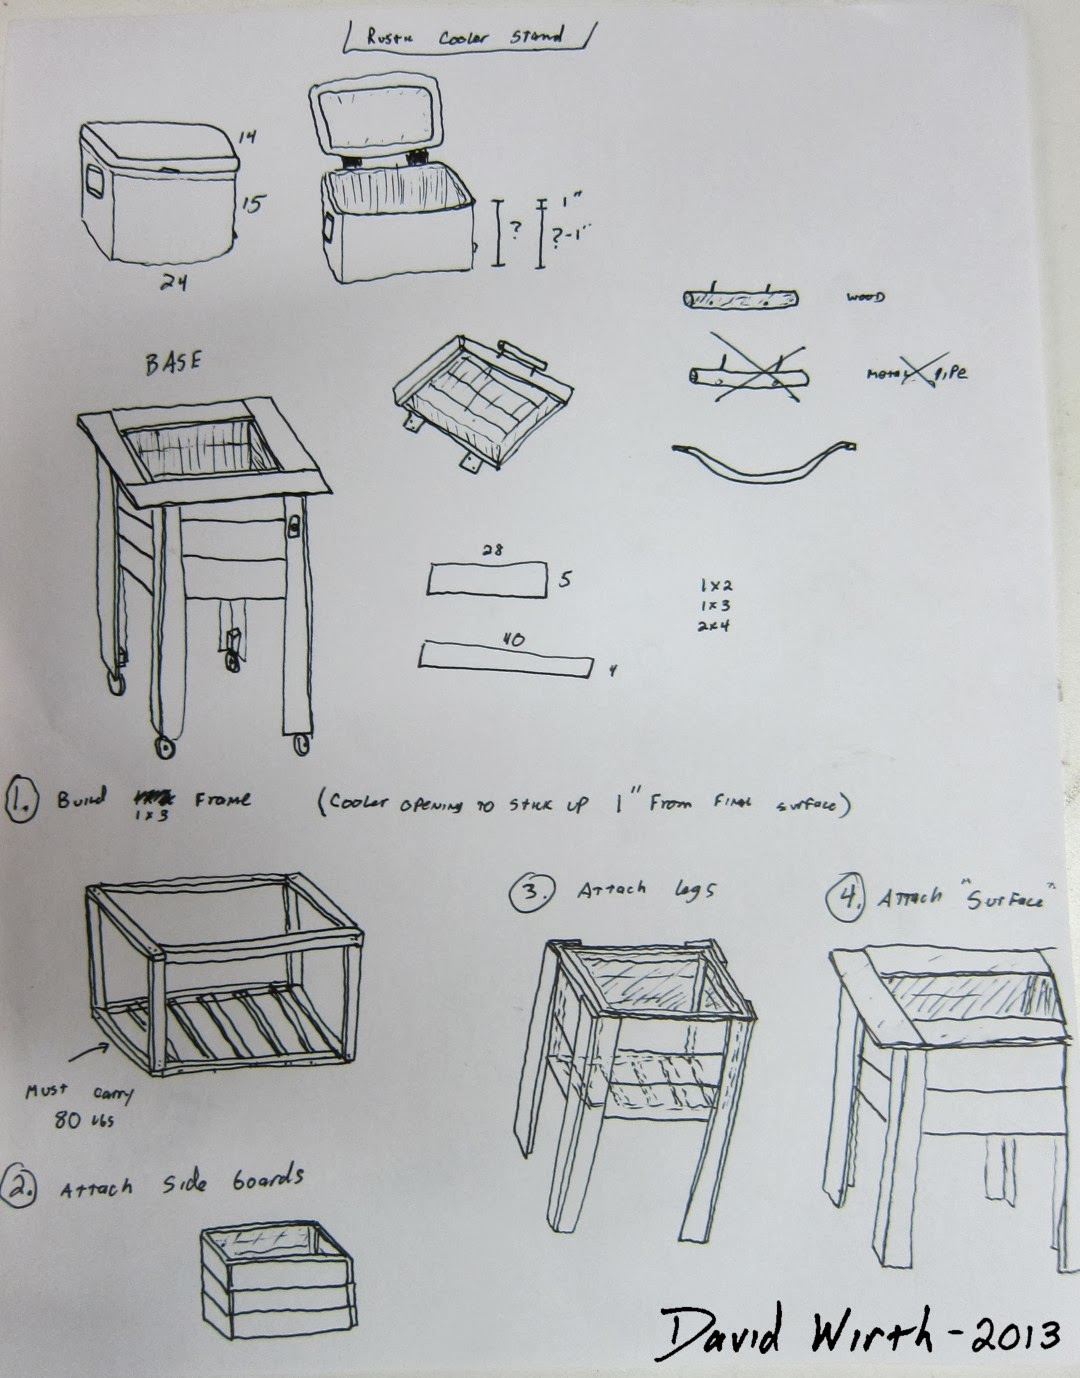 plans dimensions size make a wood cooler pallet stand